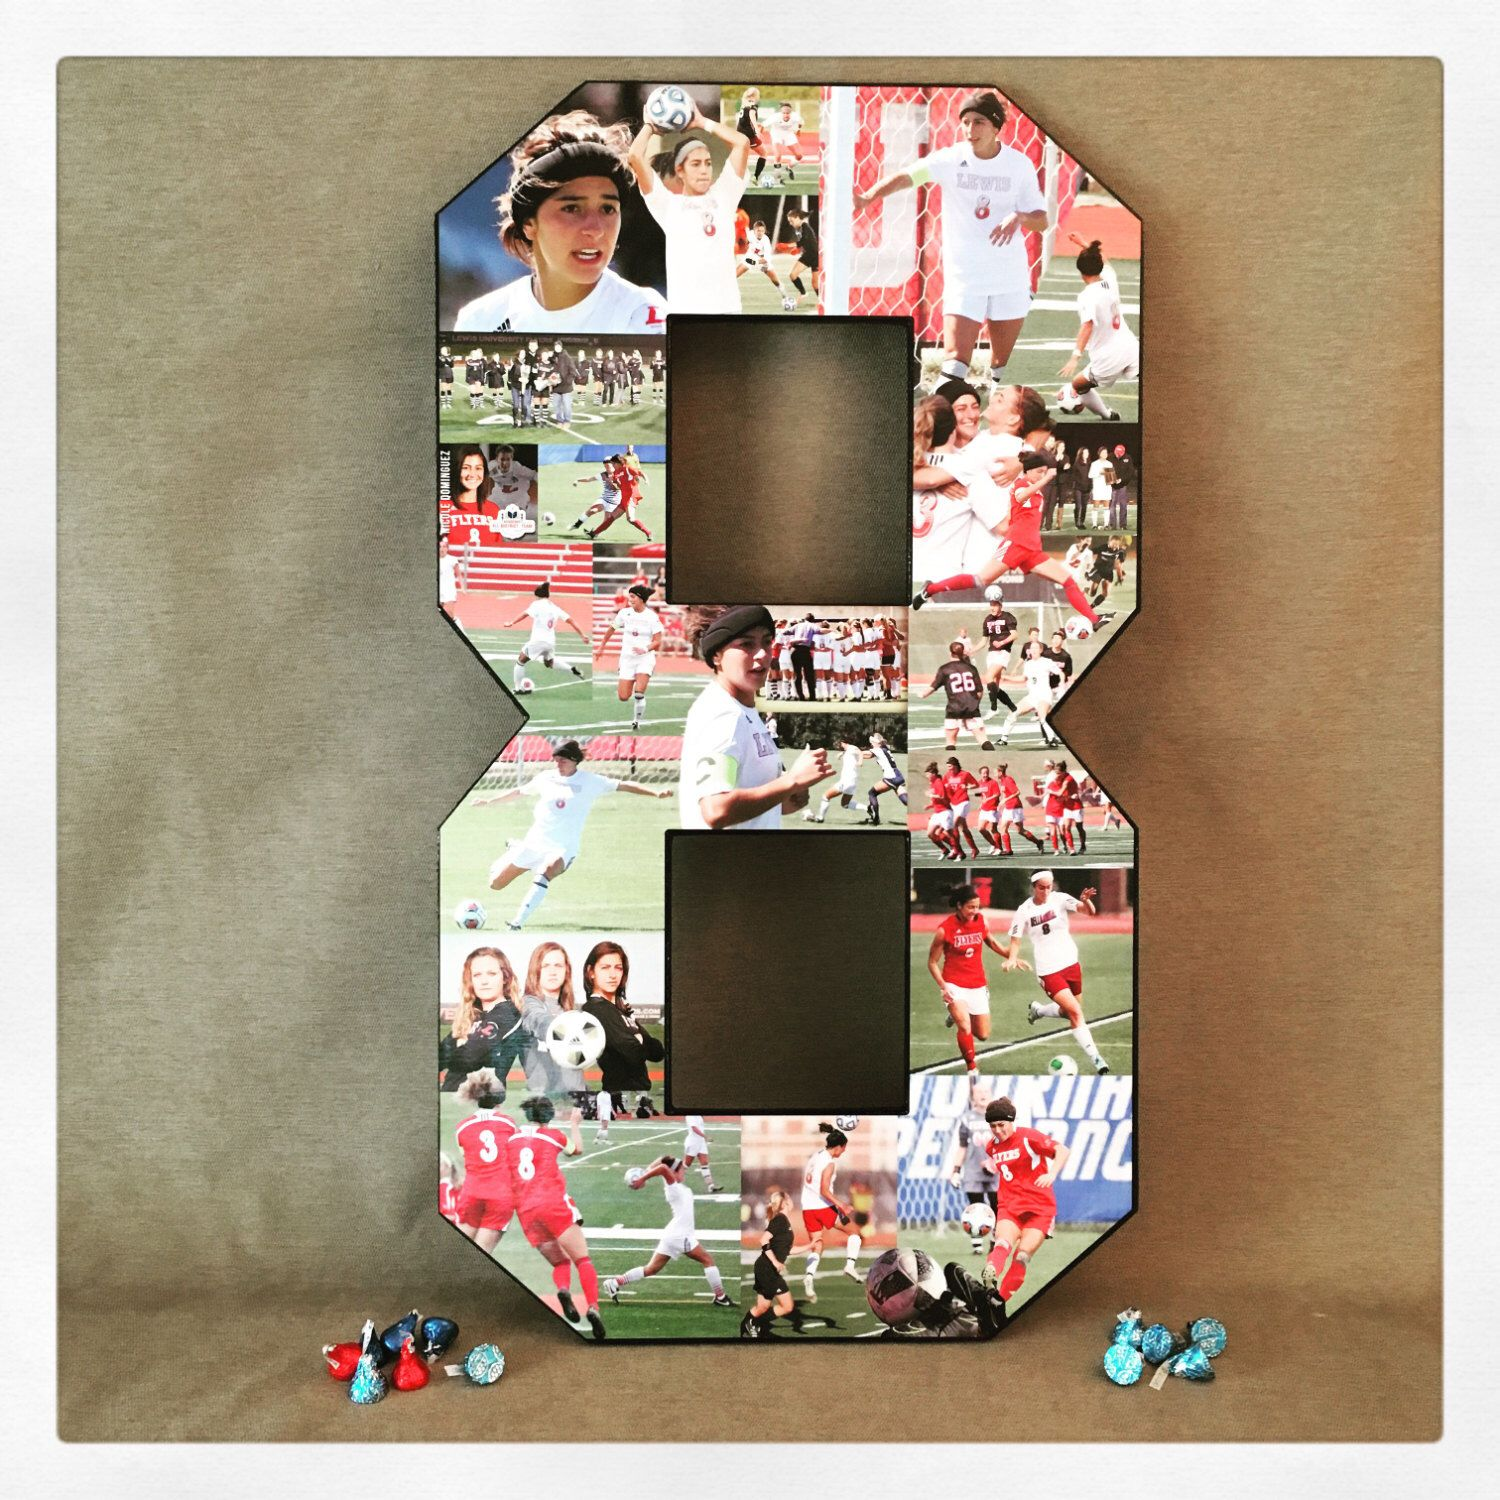 Soccer Collage Sports Collage Great Senior Night Gift Idea Photo Collage On Wooden Number Birthday Collage Surprise Birthday Decorations Graduation Collage